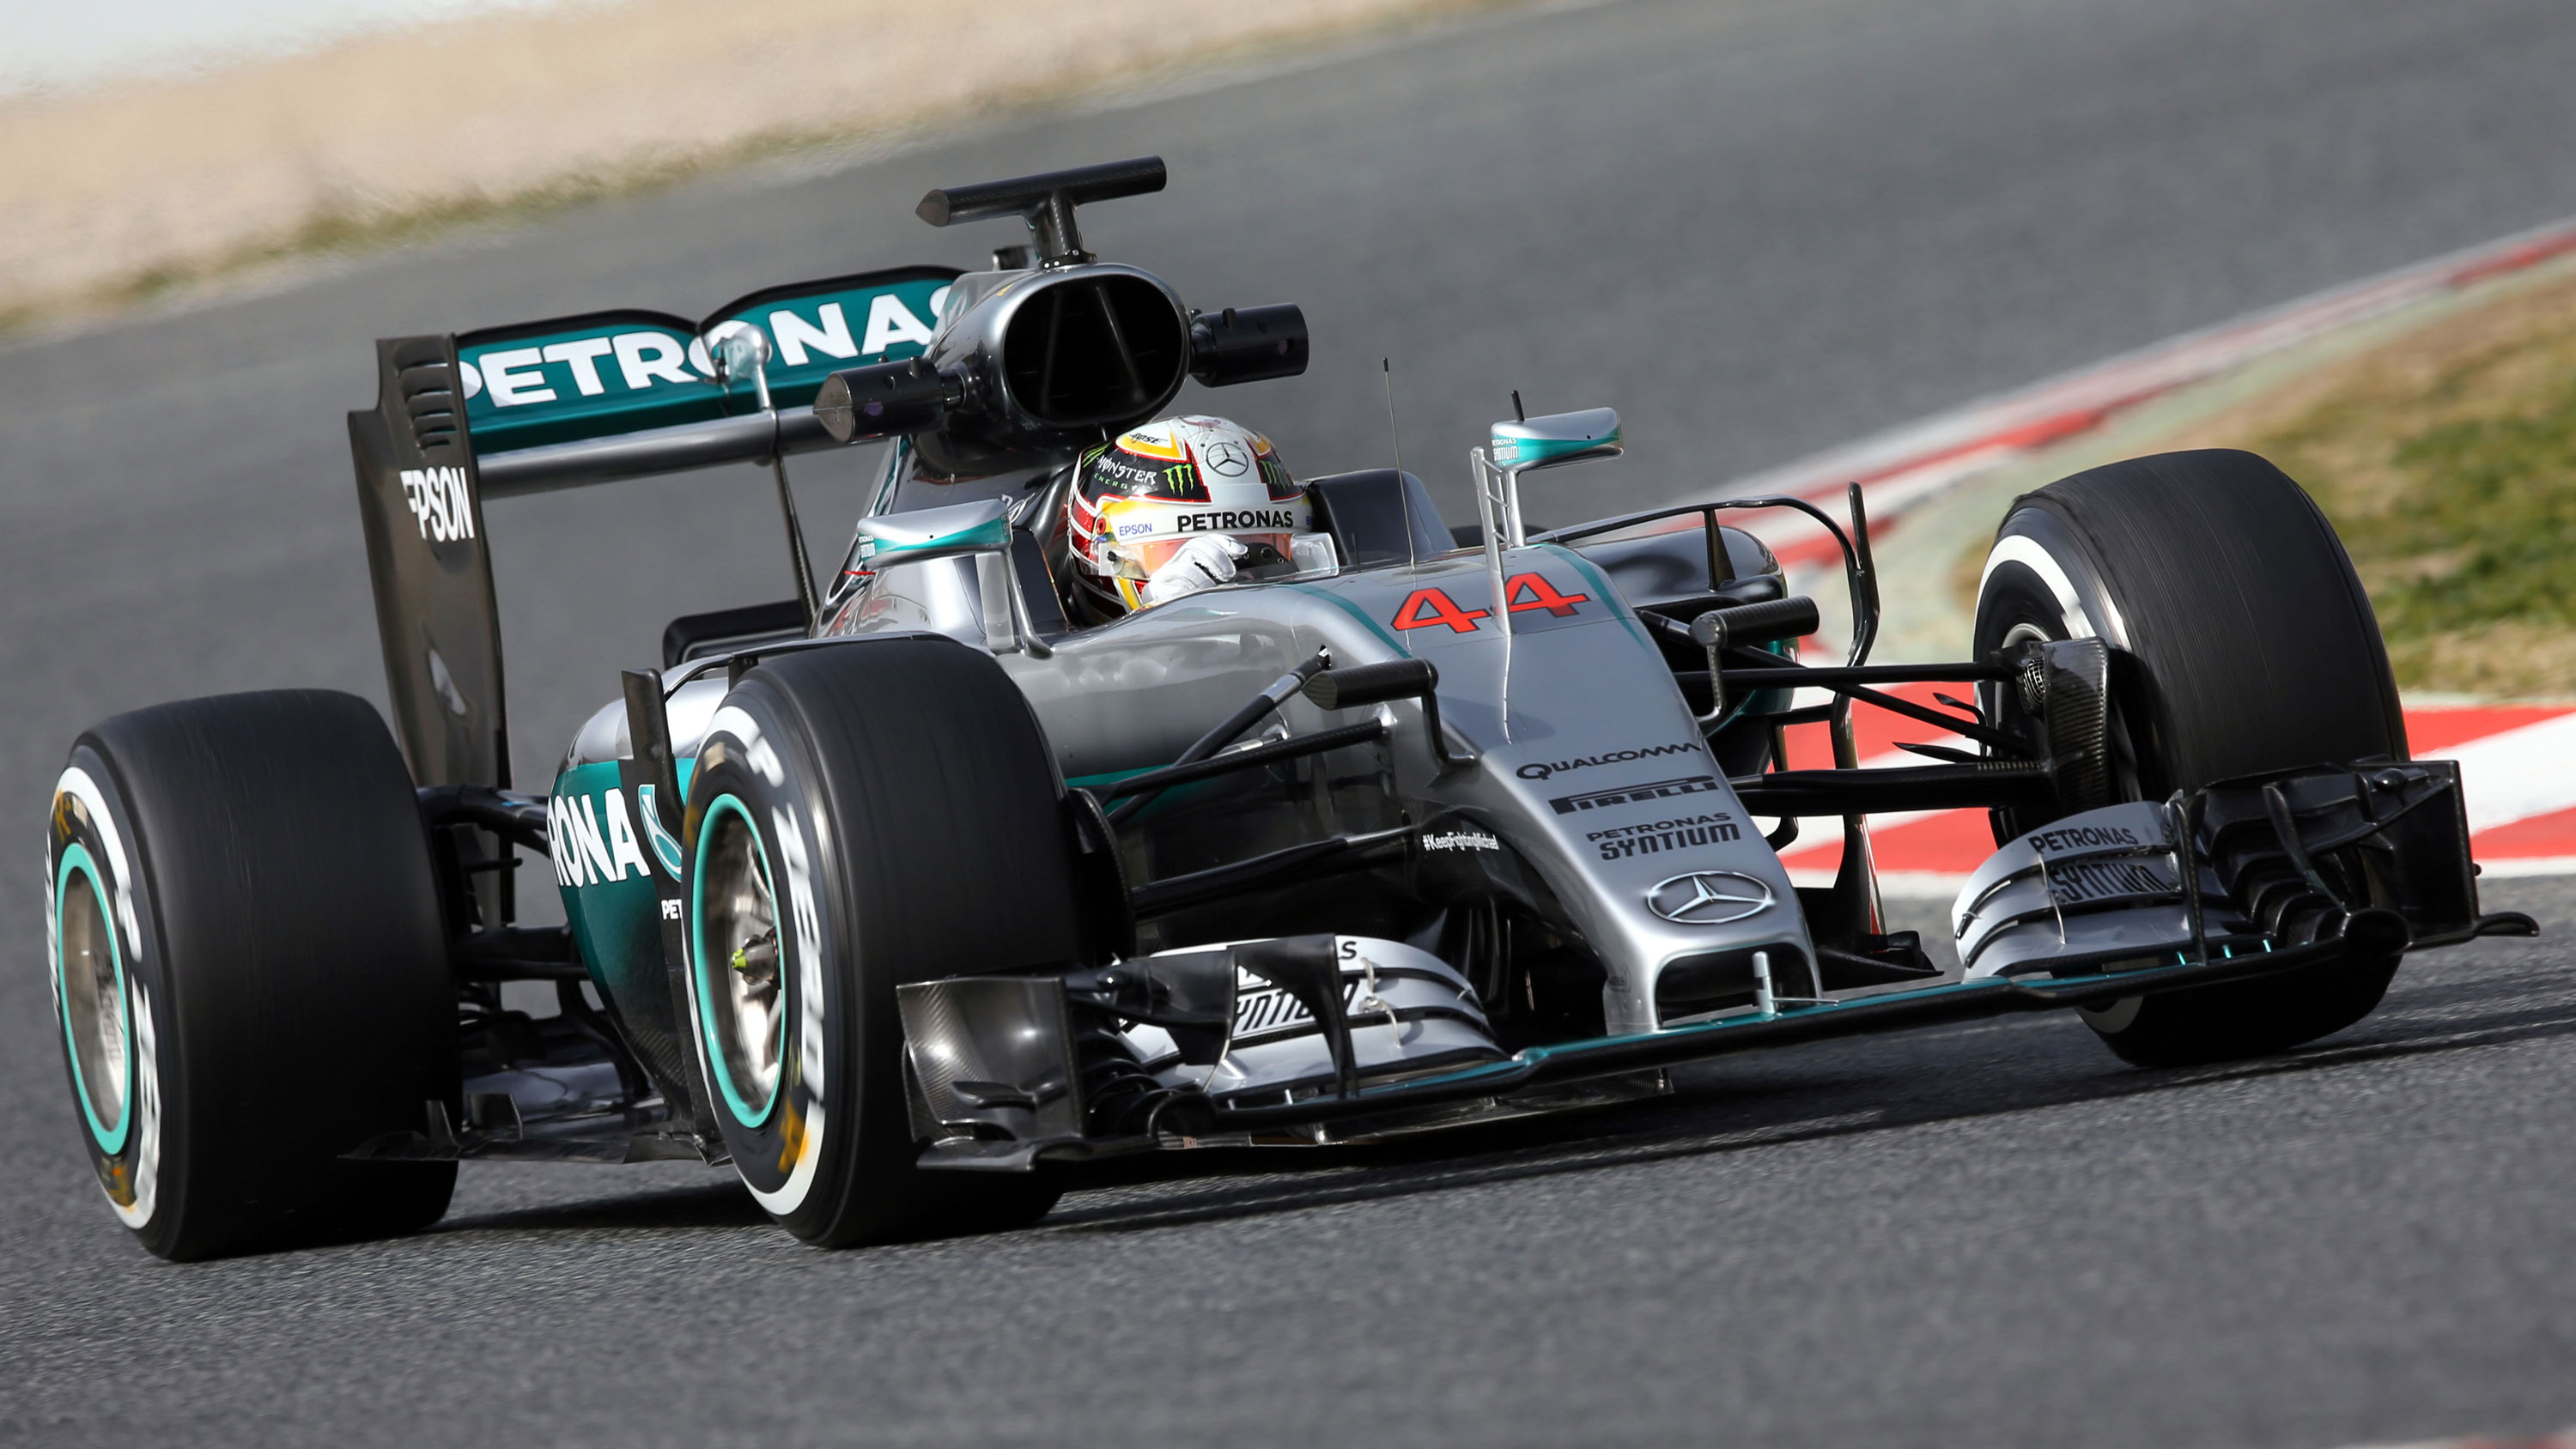 <strong>Mercedes F1 W07 Hybrid</strong>